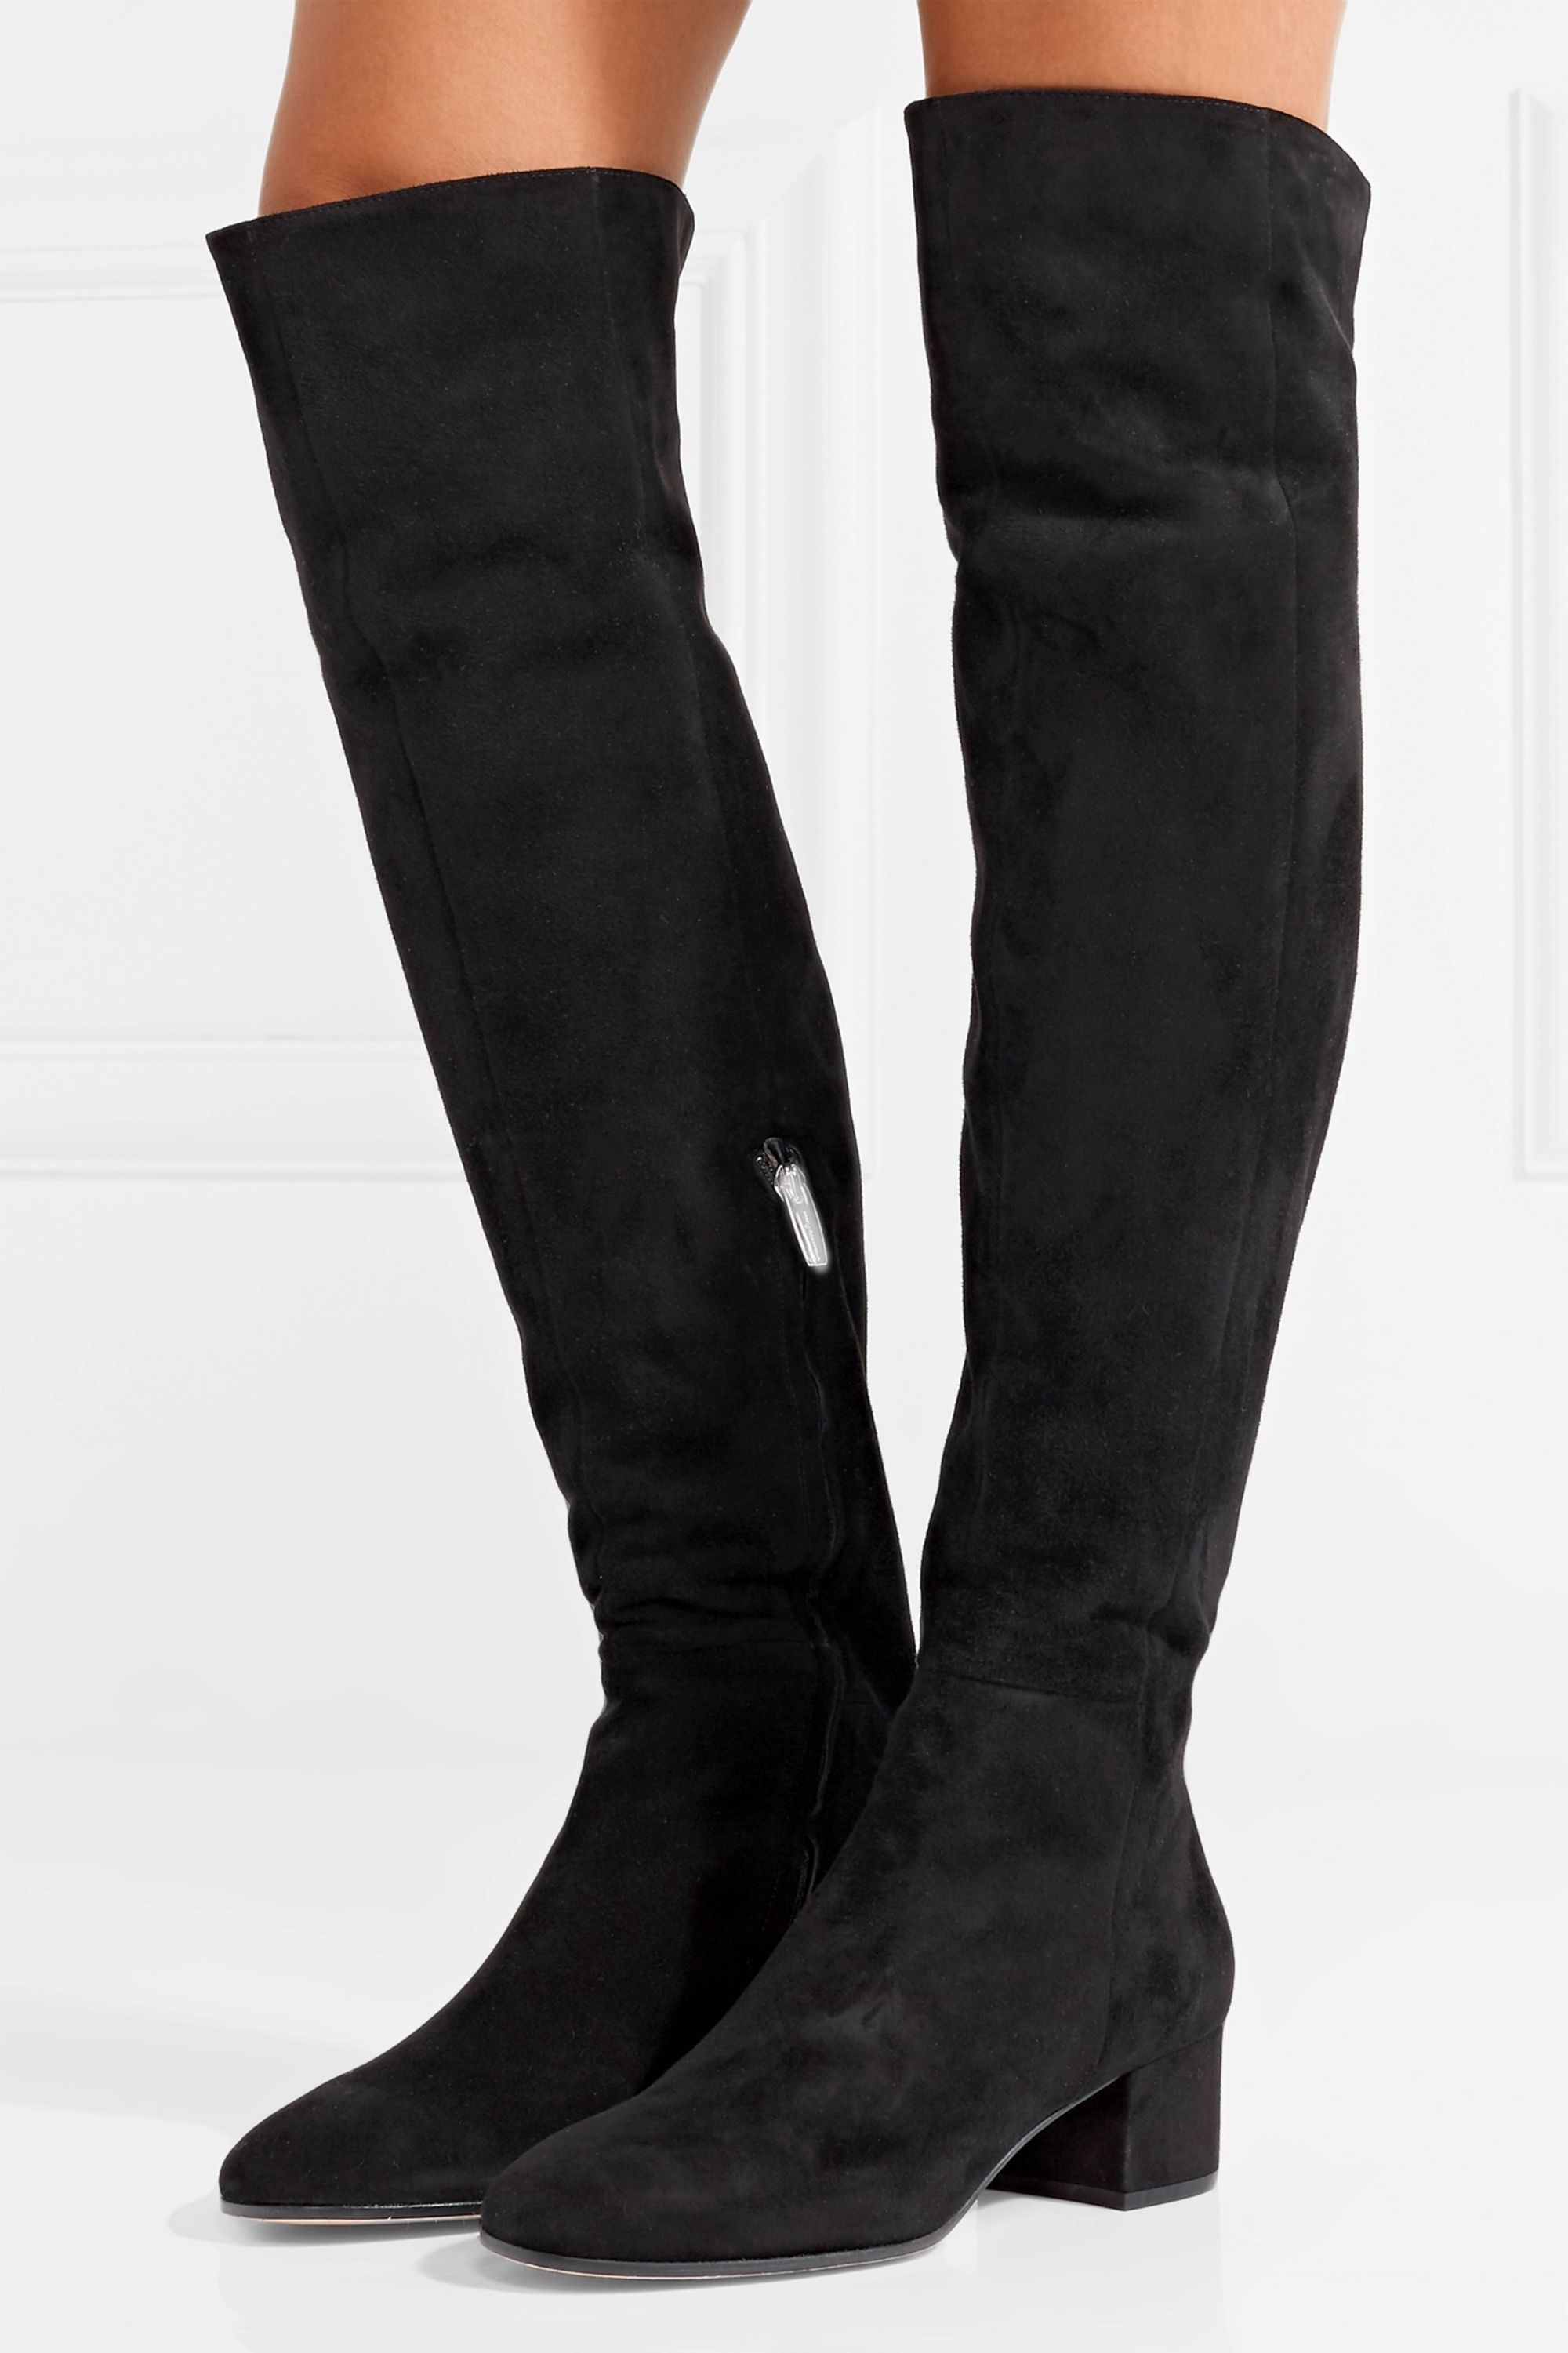 Black 45 suede over the knee boots